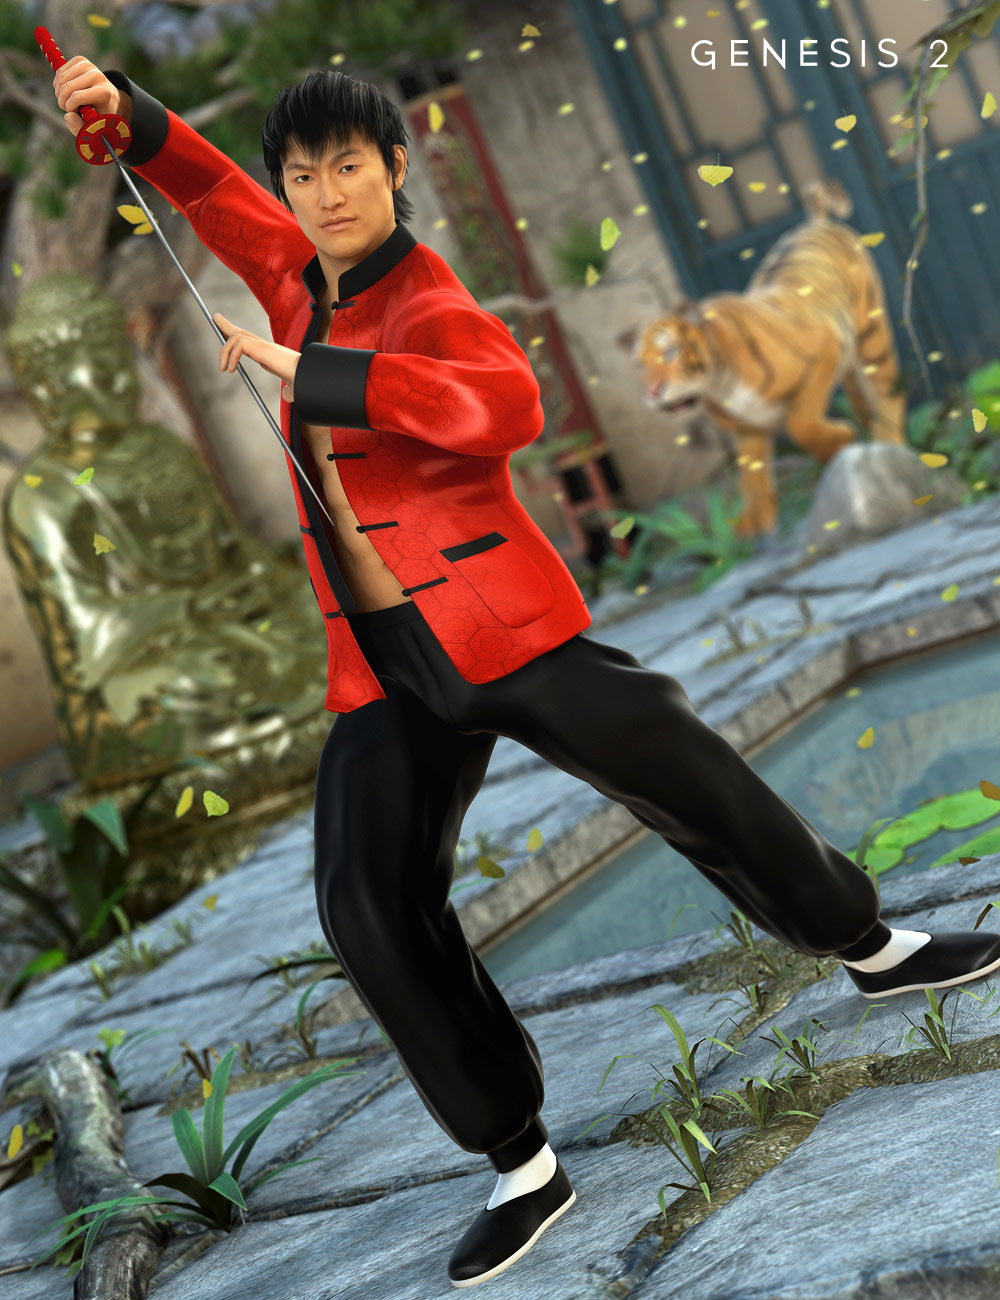 Kung Fu HD for Genesis 2 Male(s) by: Fisty & Darc, 3D Models by Daz 3D